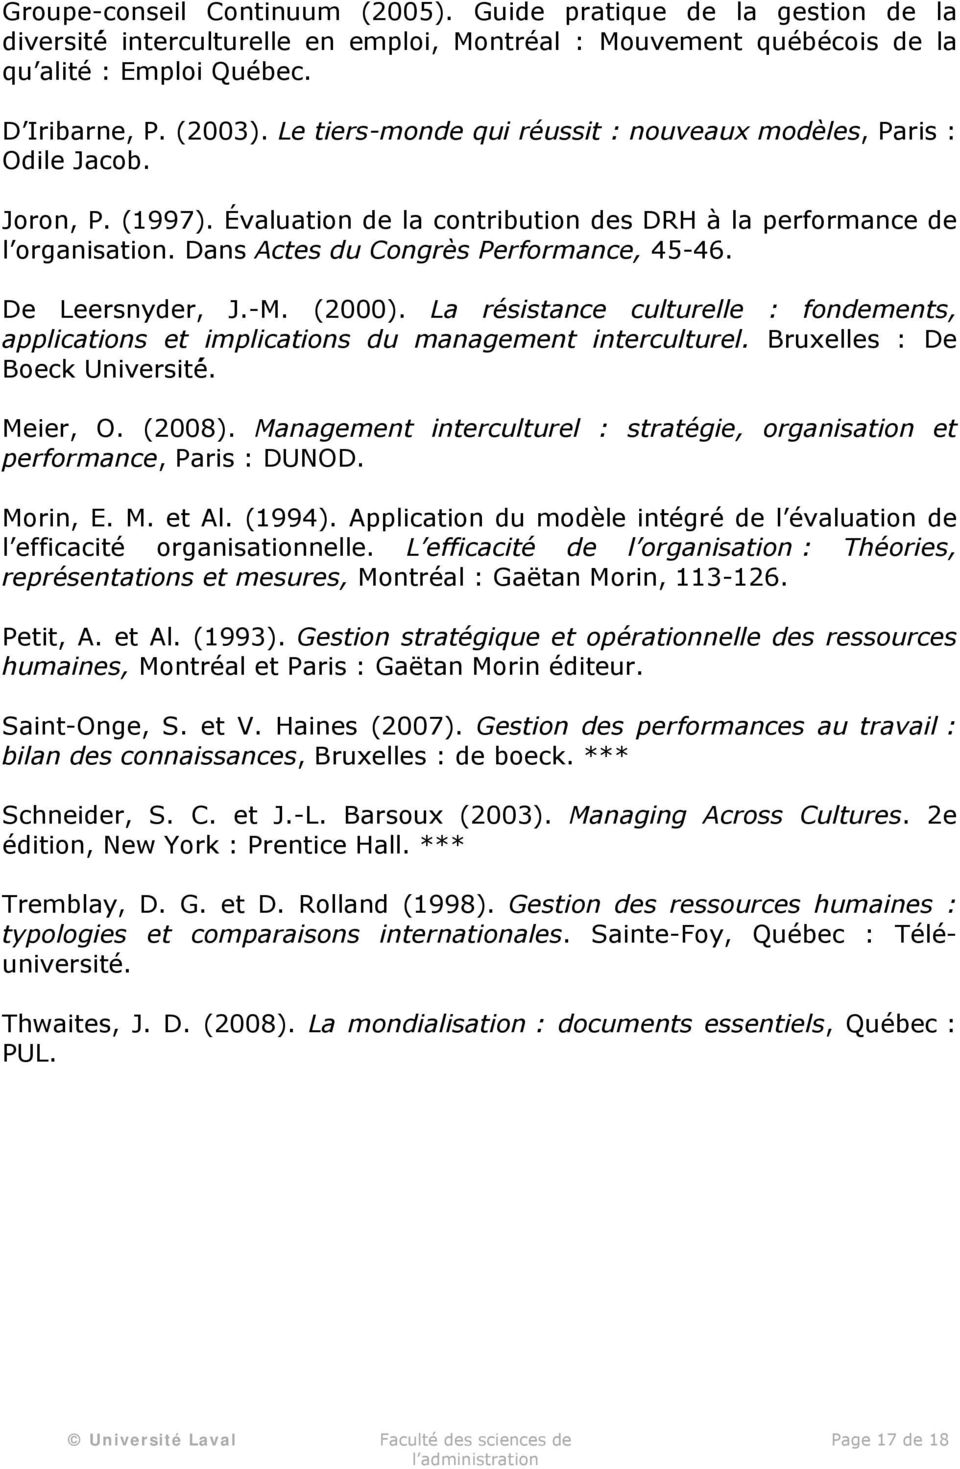 Dans Actes du Congrès Performance, 45-46. De Leersnyder, J.-M. (2000). La résistance culturelle : fondements, applications et implications du management interculturel. Bruxelles : De Boeck Université.